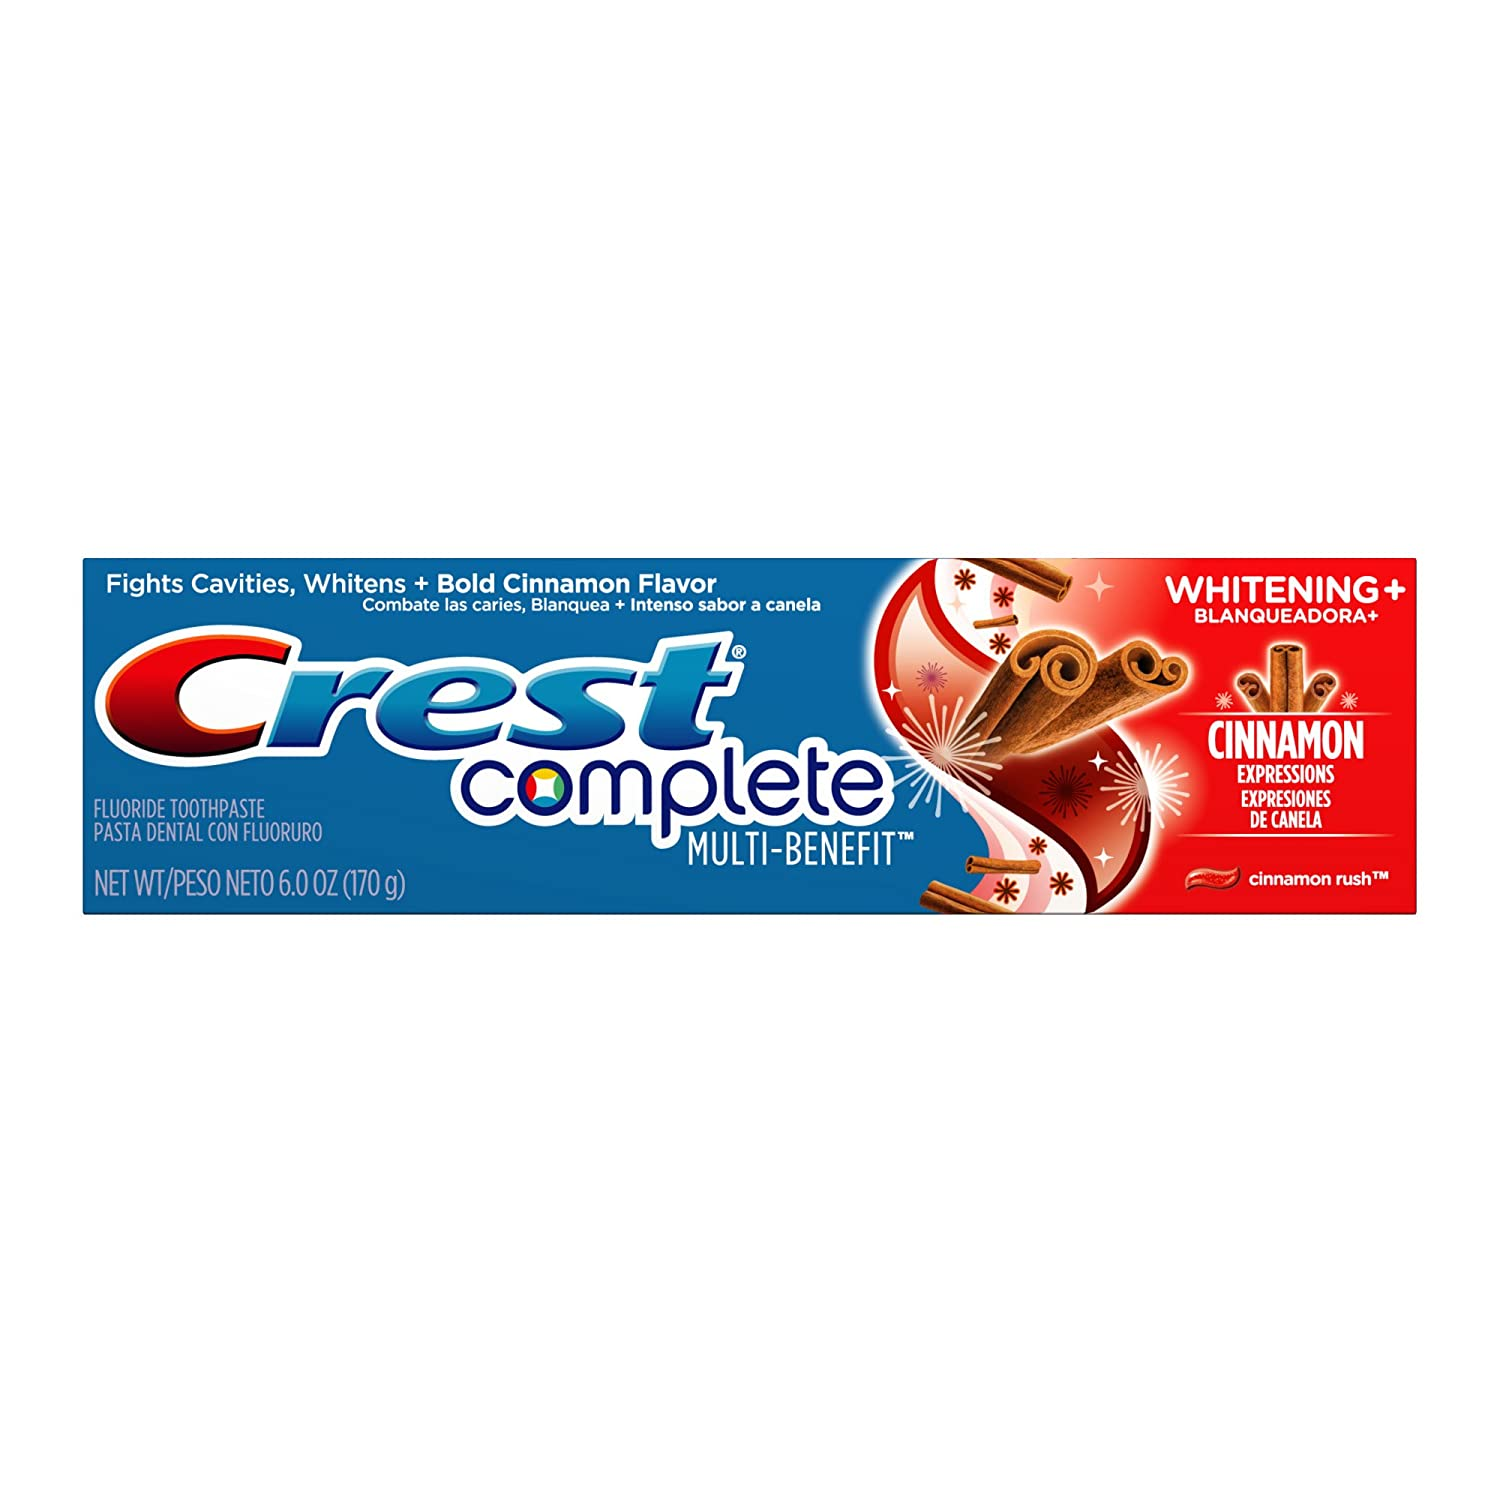 Amazon.com : Crest Complete Multi-Benefit Whitening Expressions Cinnamon Rush Flavor Toothpaste, 6 oz., (Pack of 6) : Tooth Whitening Products : Beauty